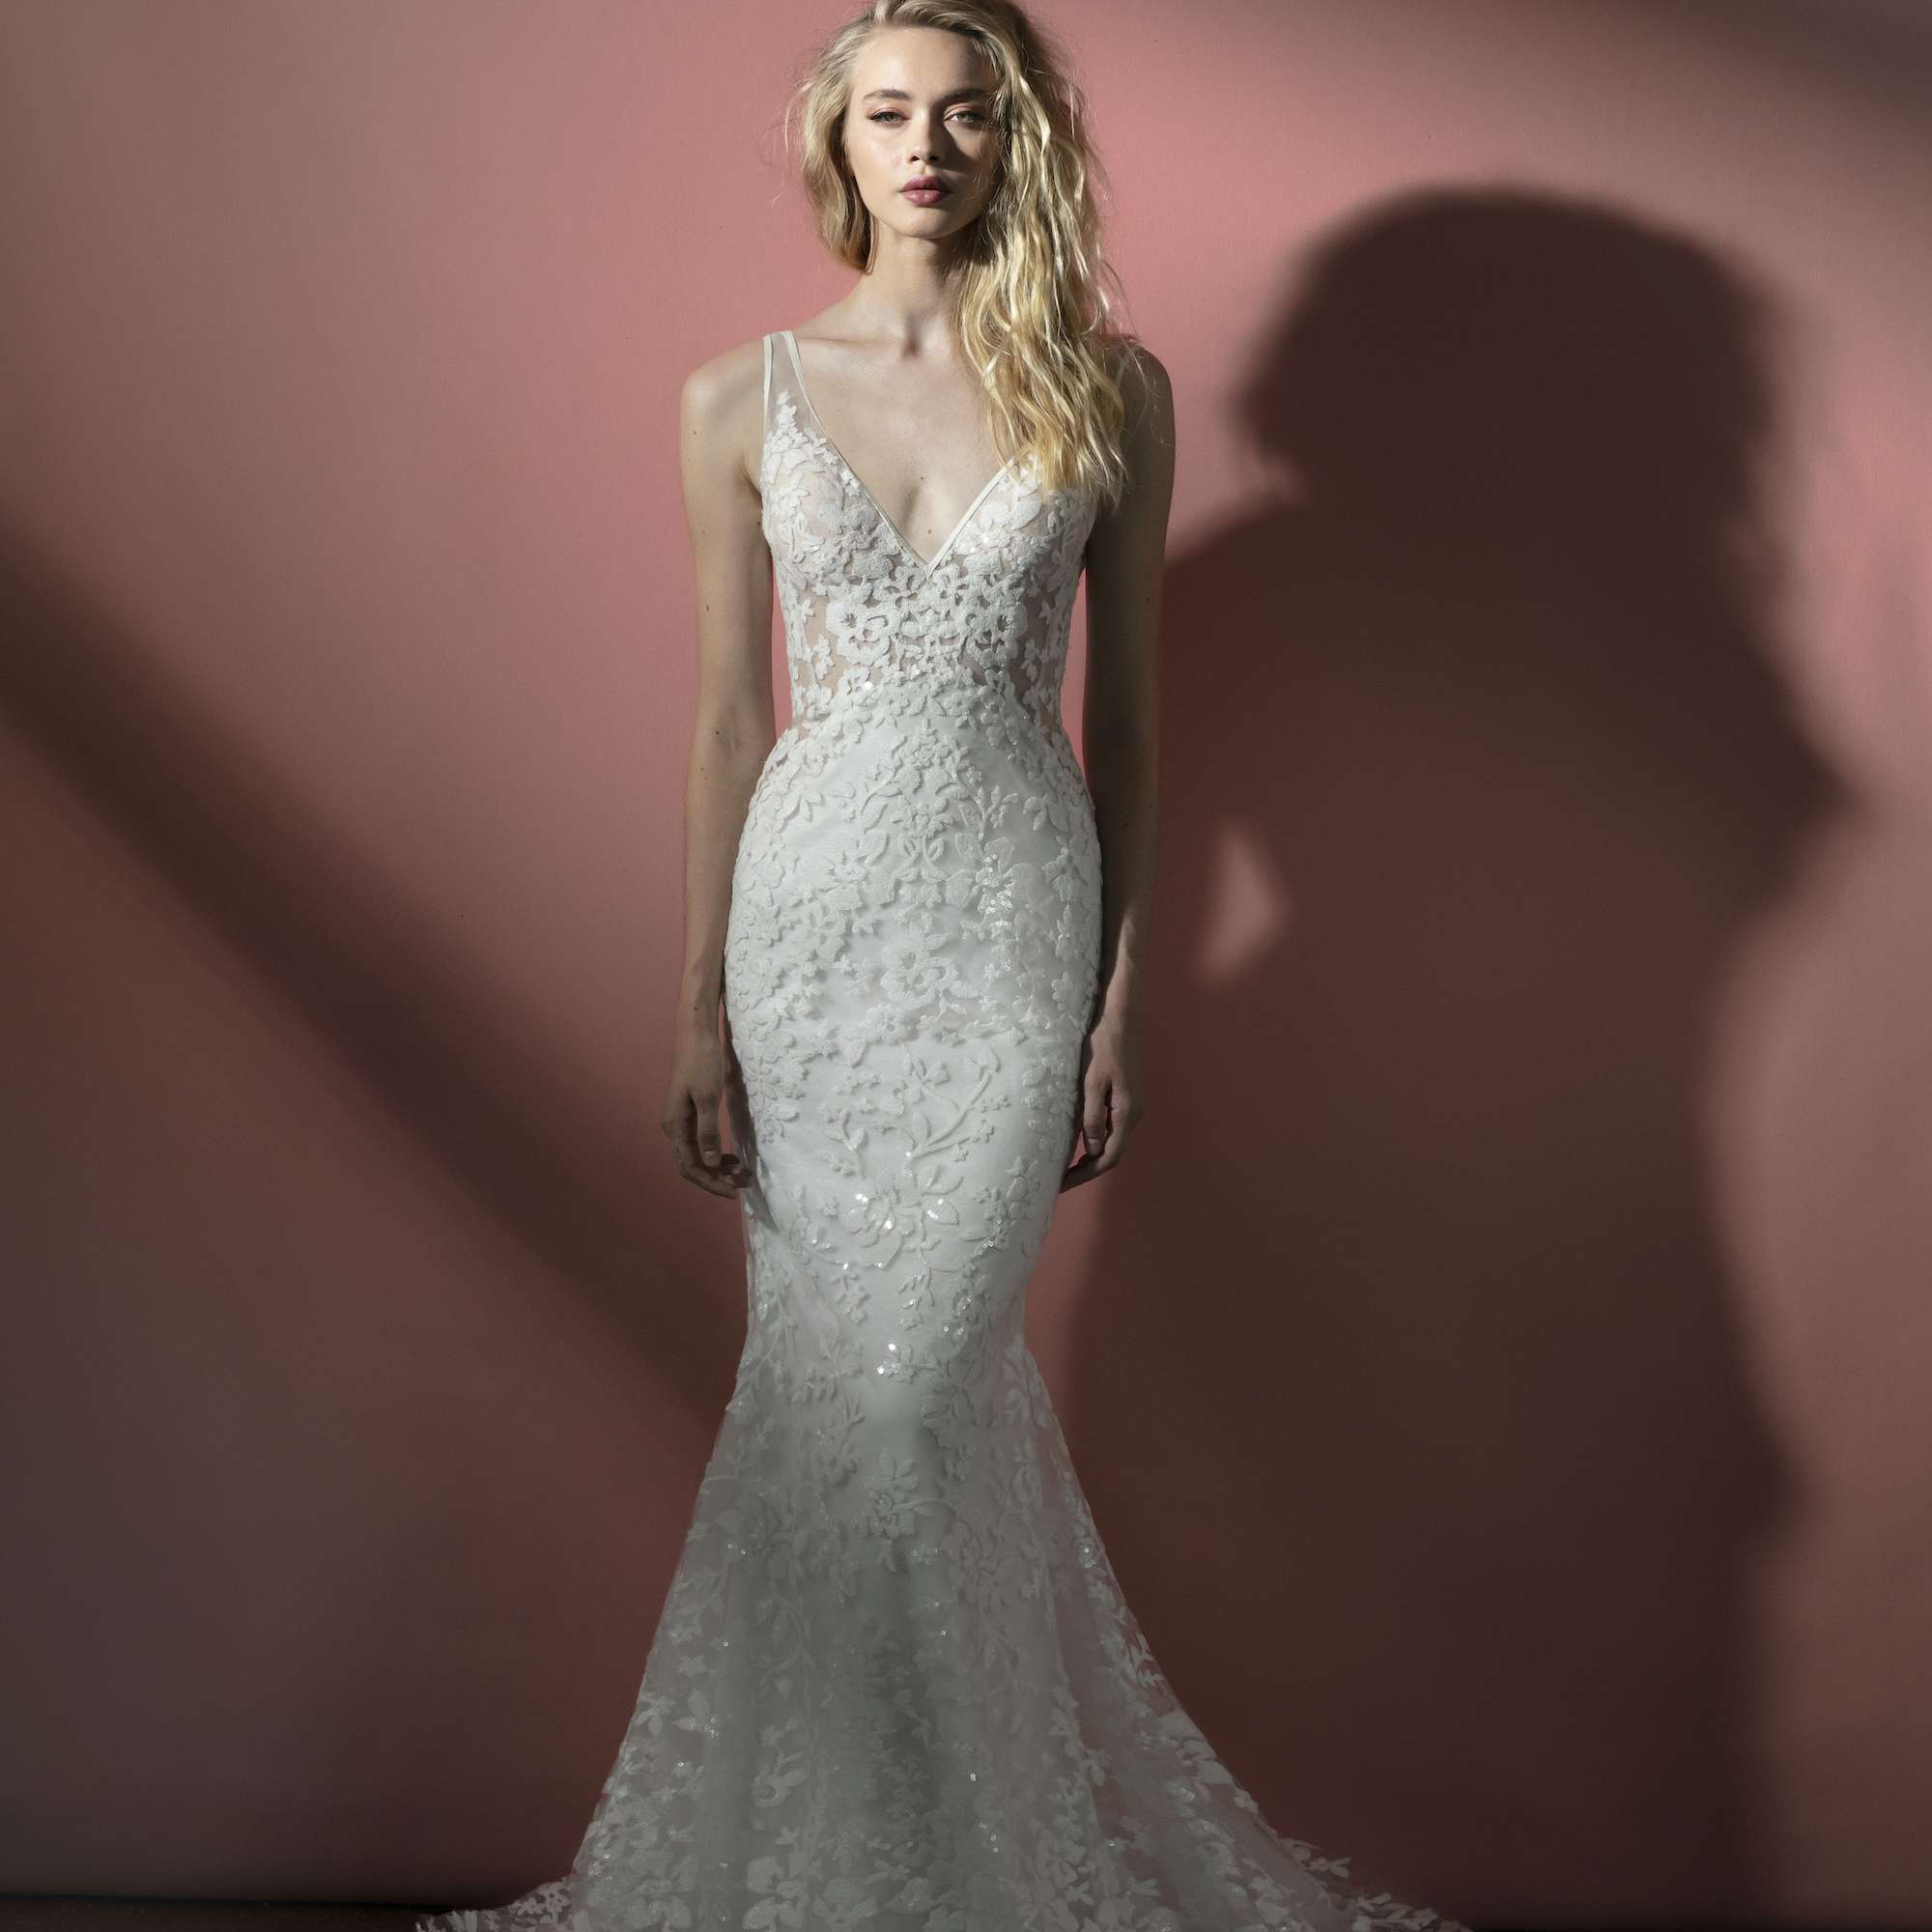 Wilder fit-and-flare wedding dress